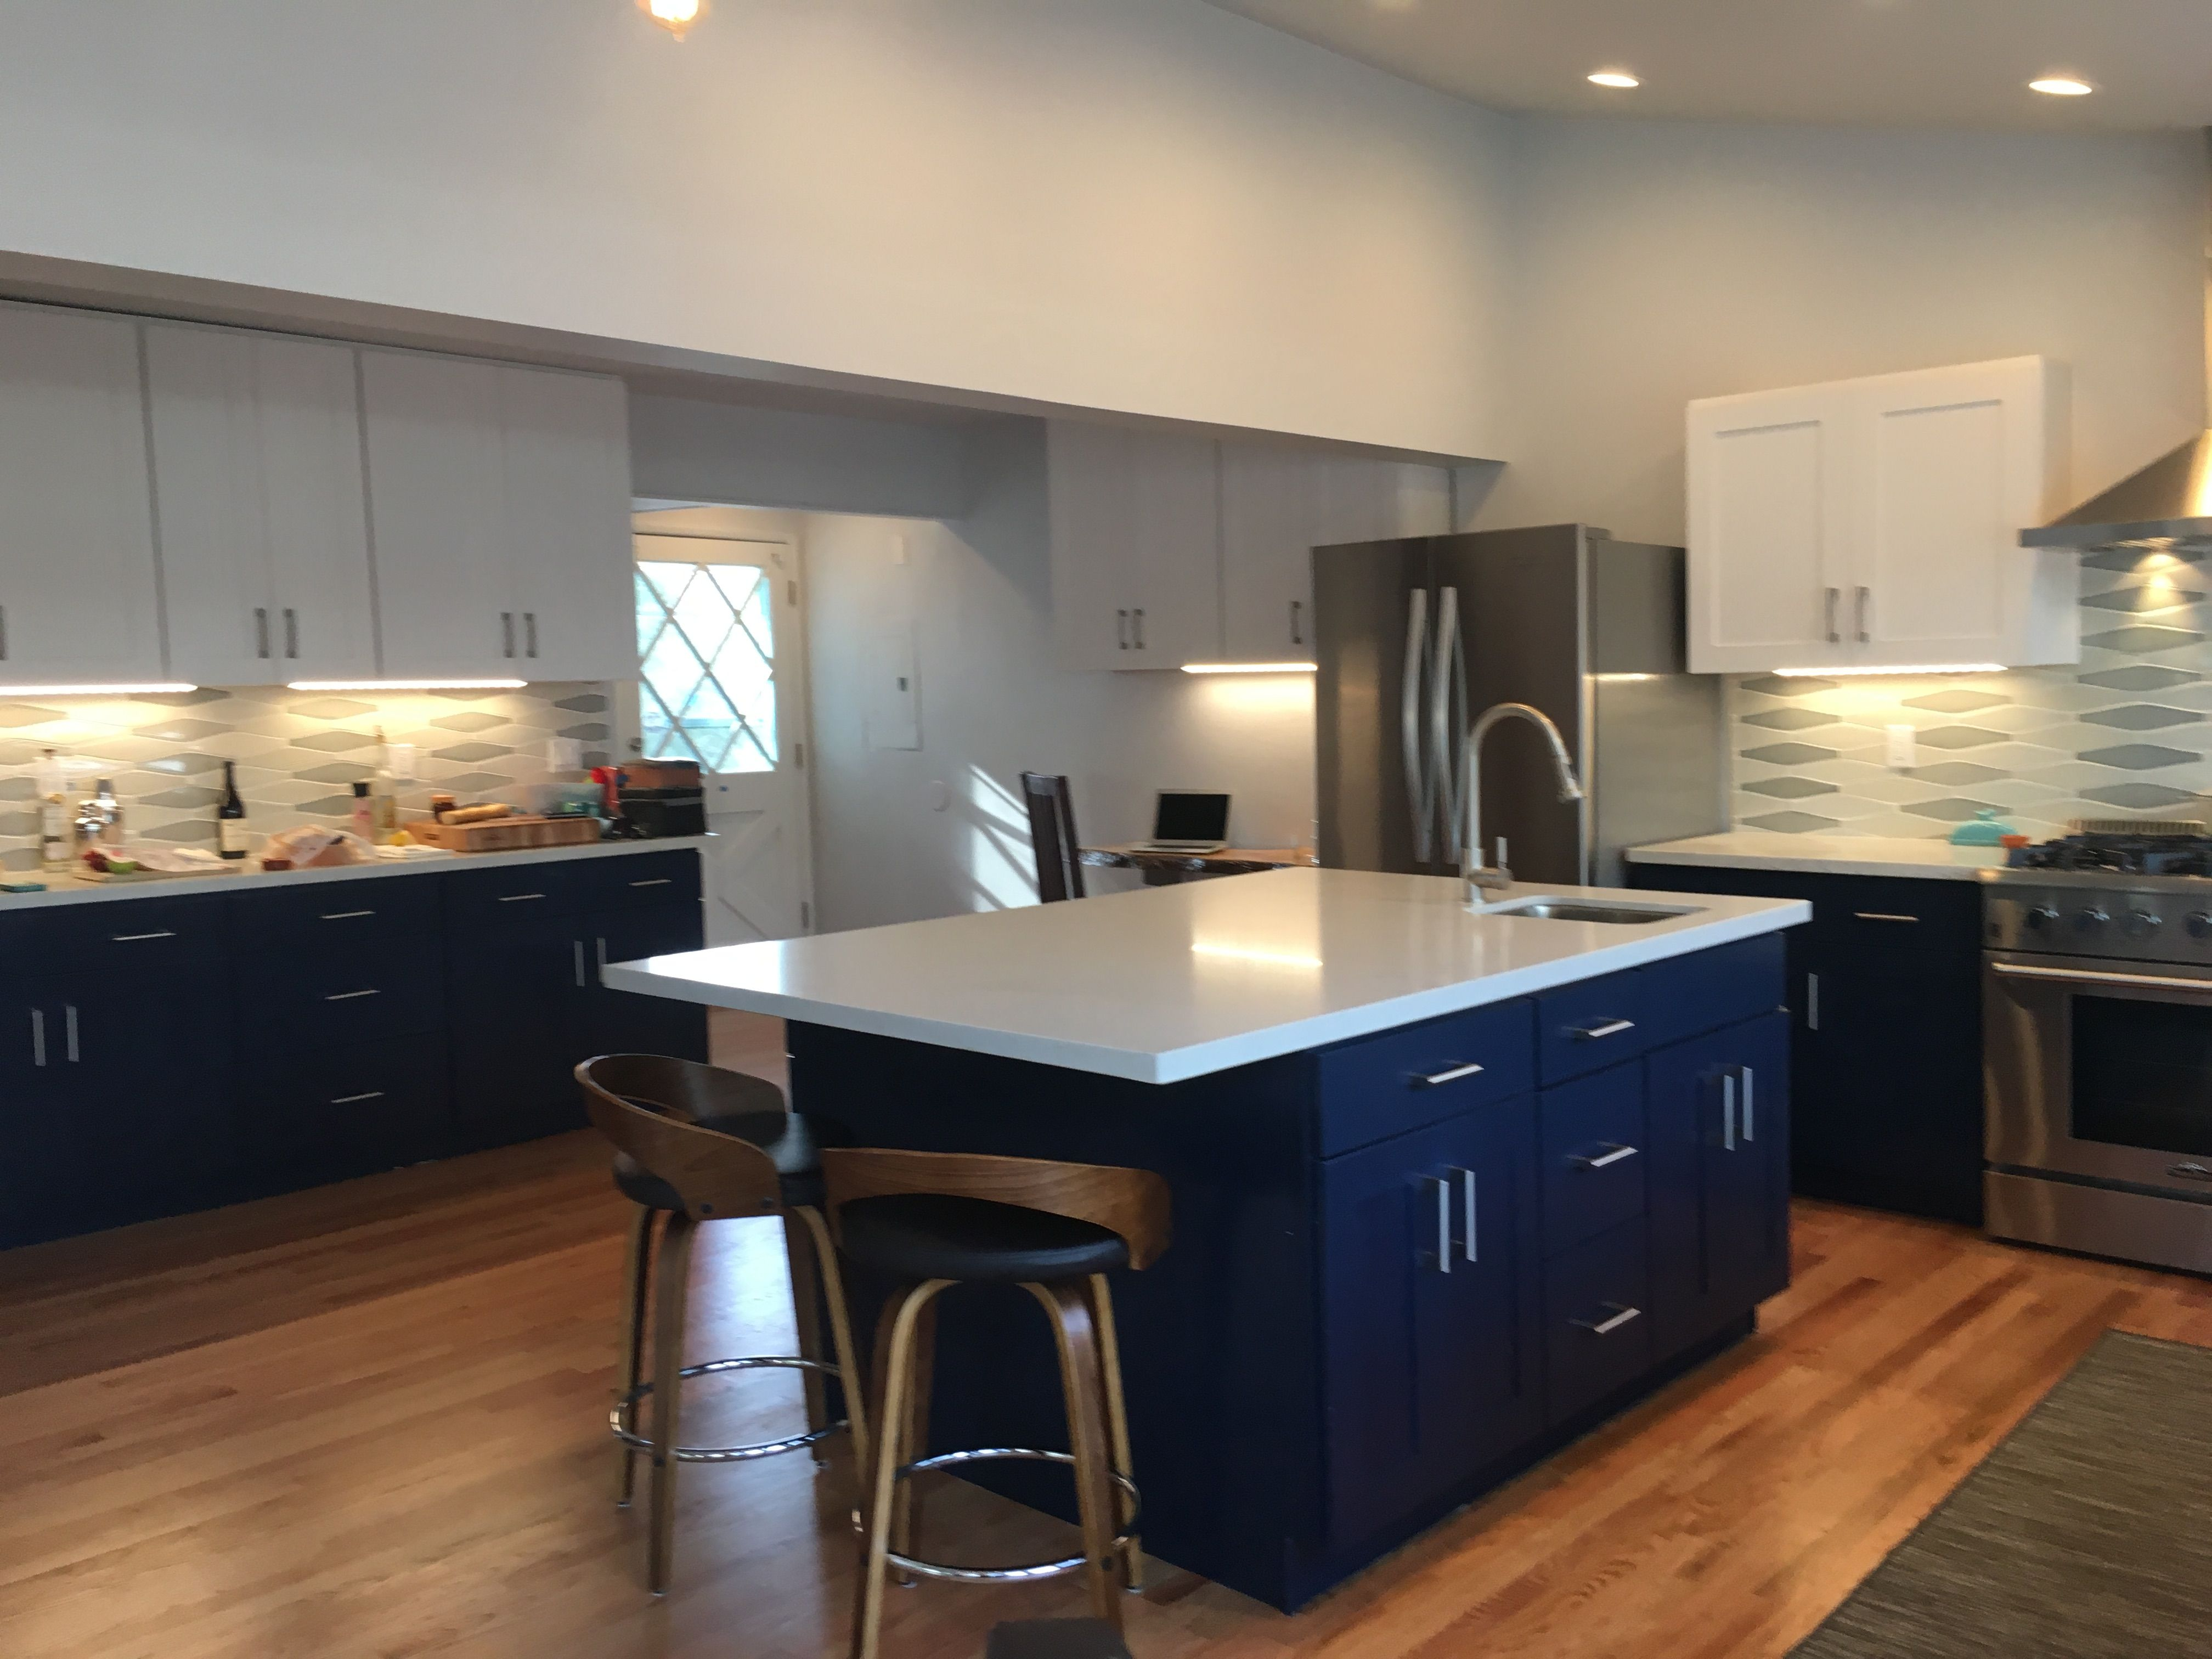 Pin by HD Design on Before & After-Modern Kitchen Remodel- N ...